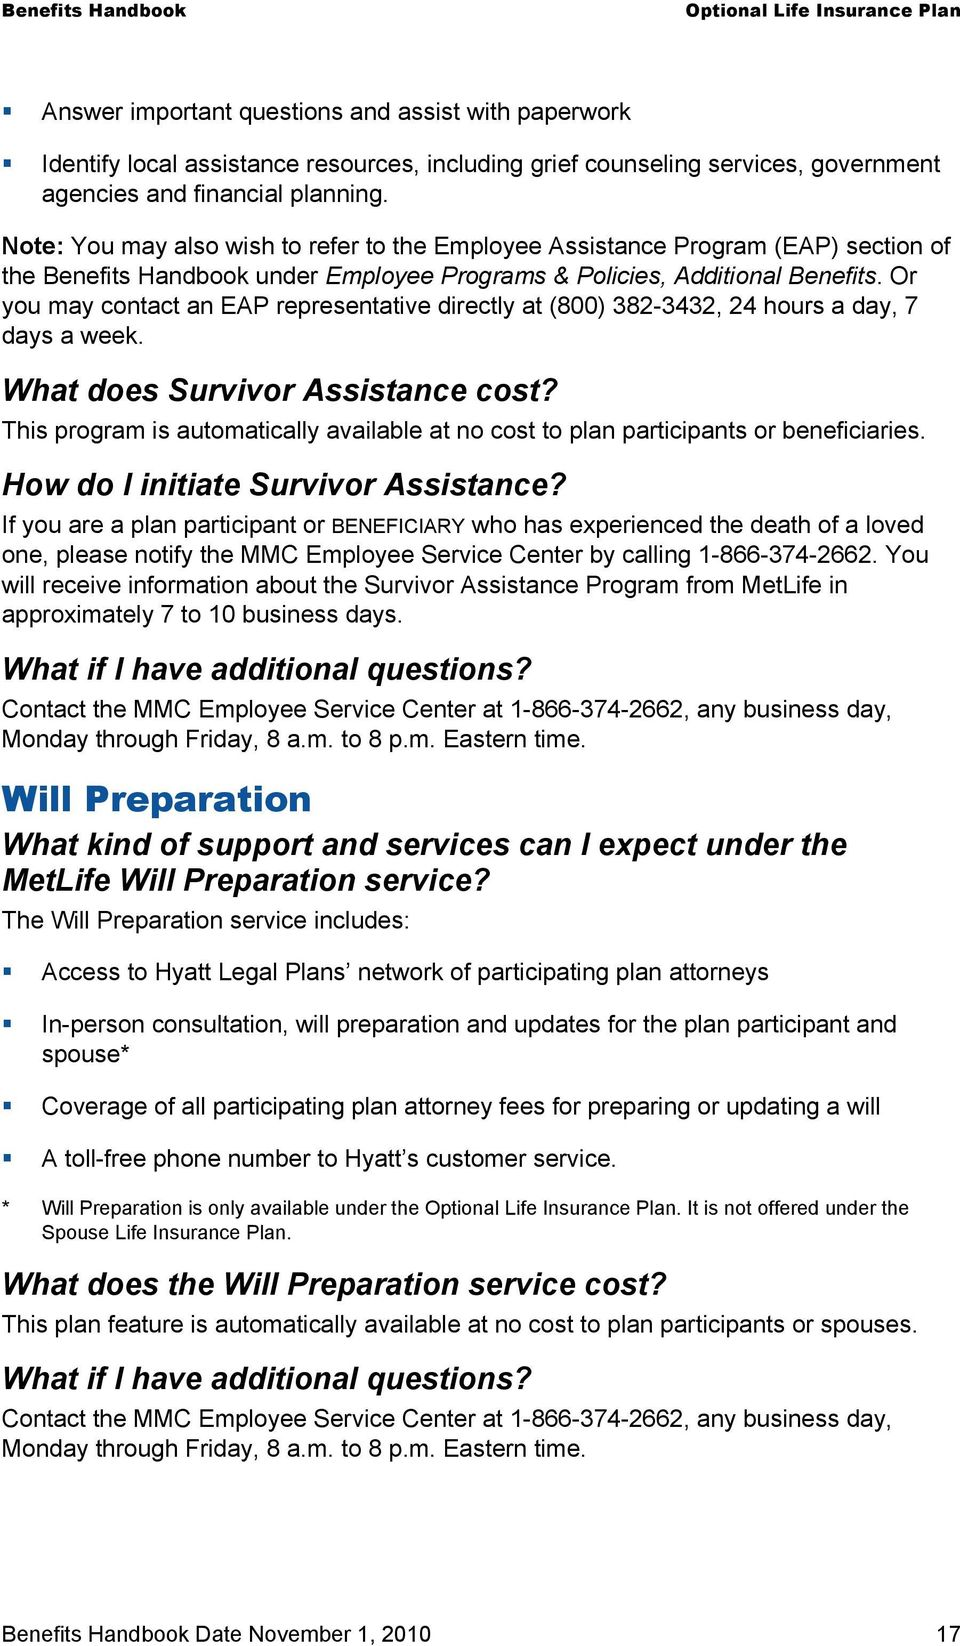 Or you may contact an EAP representative directly at (800) 382-3432, 24 hours a day, 7 days a week. What does Survivor Assistance cost?